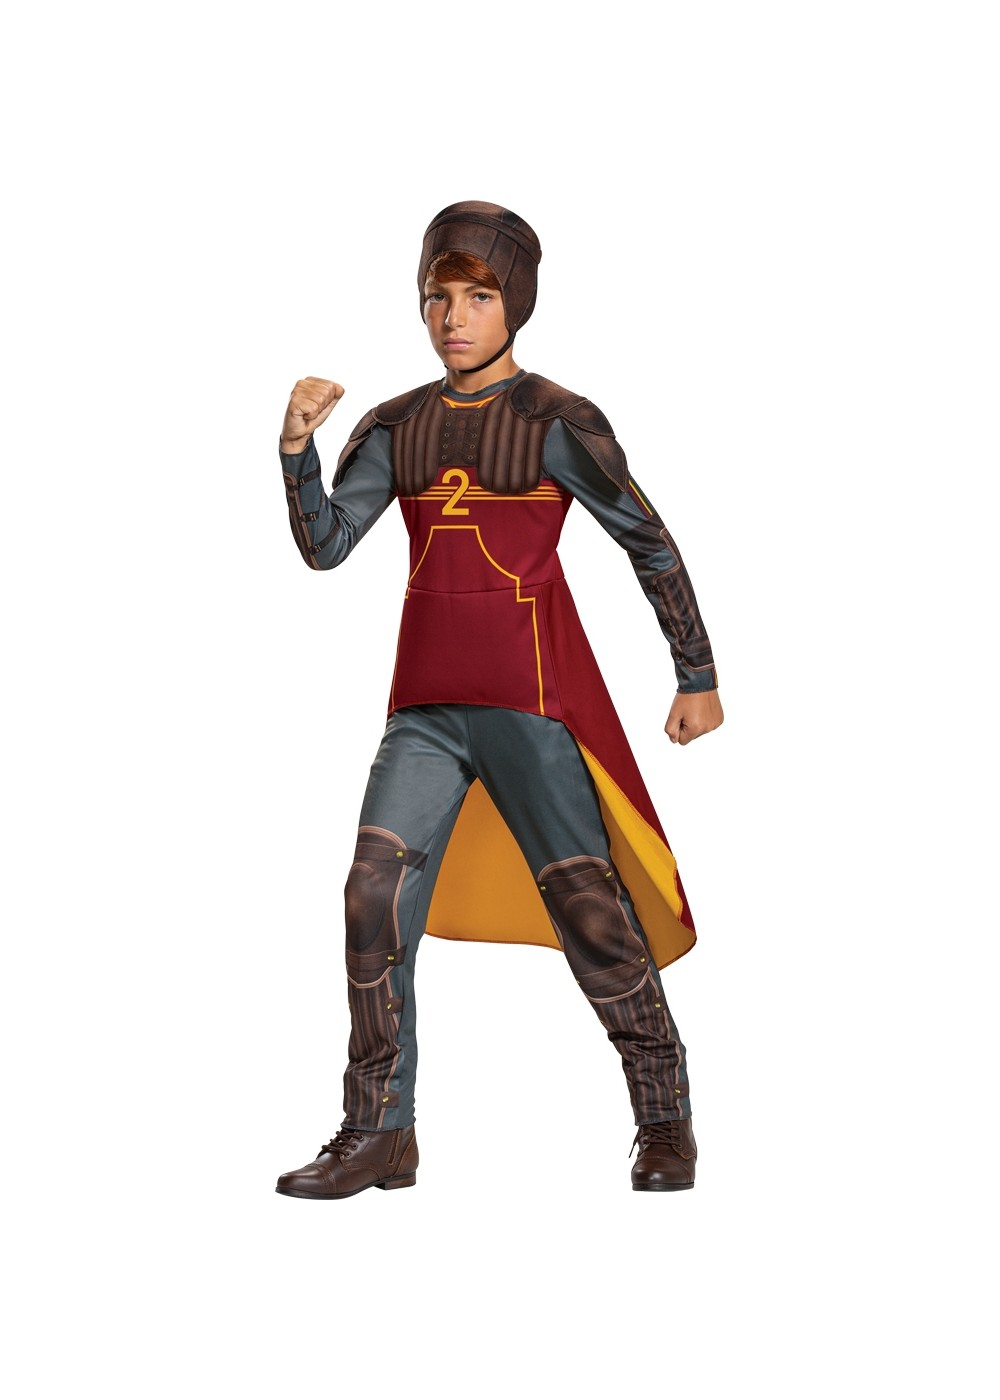 Boys Weasley Harry Potter Deluxe Costume